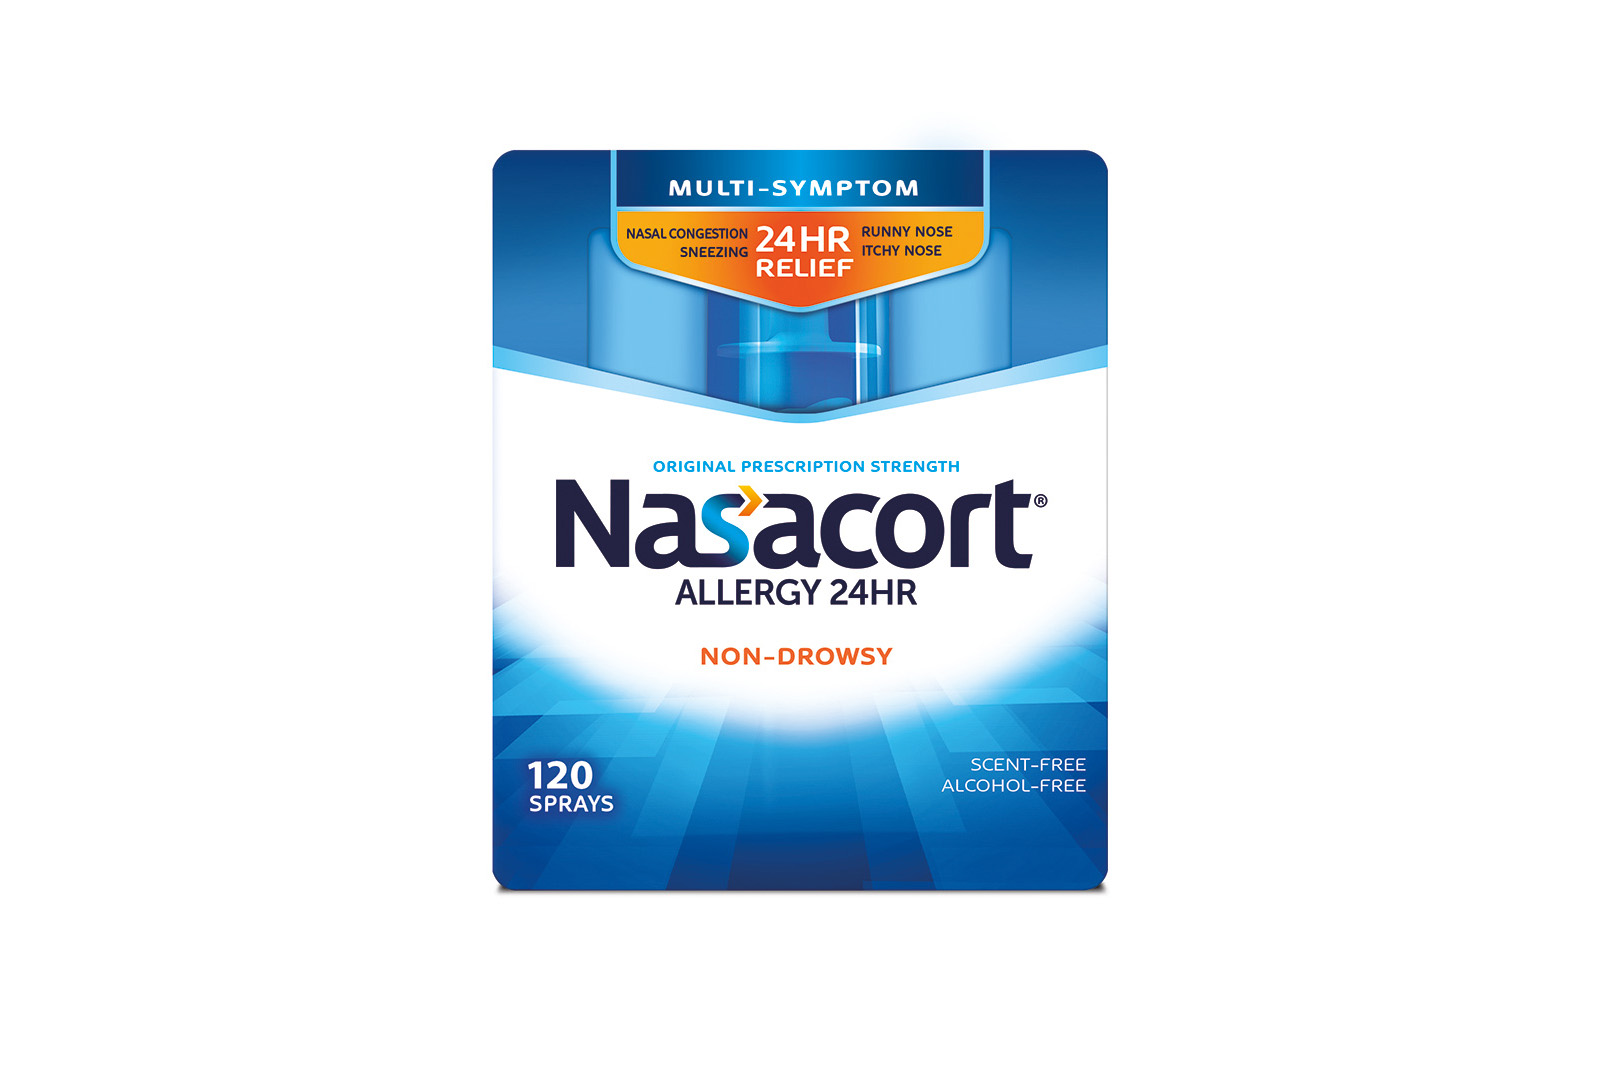 Nasacort® Allergy 24HR